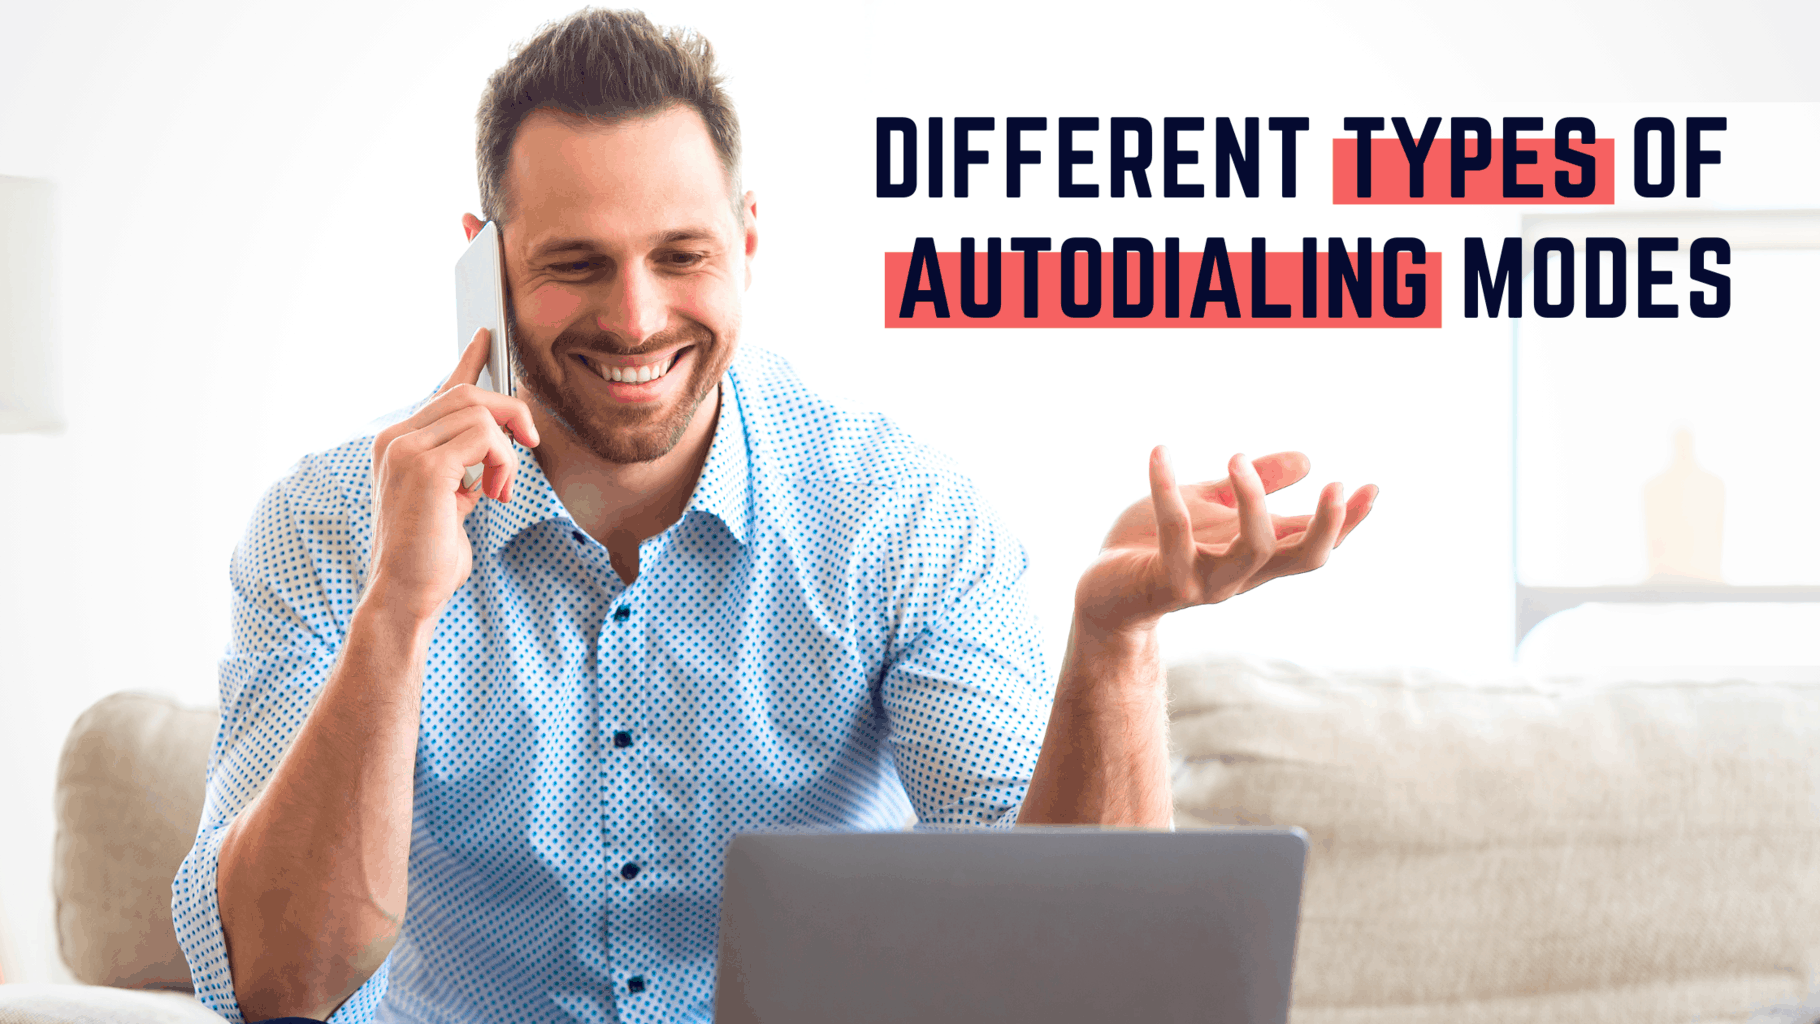 What are the Different Types of Auto-Dialing Modes? 2